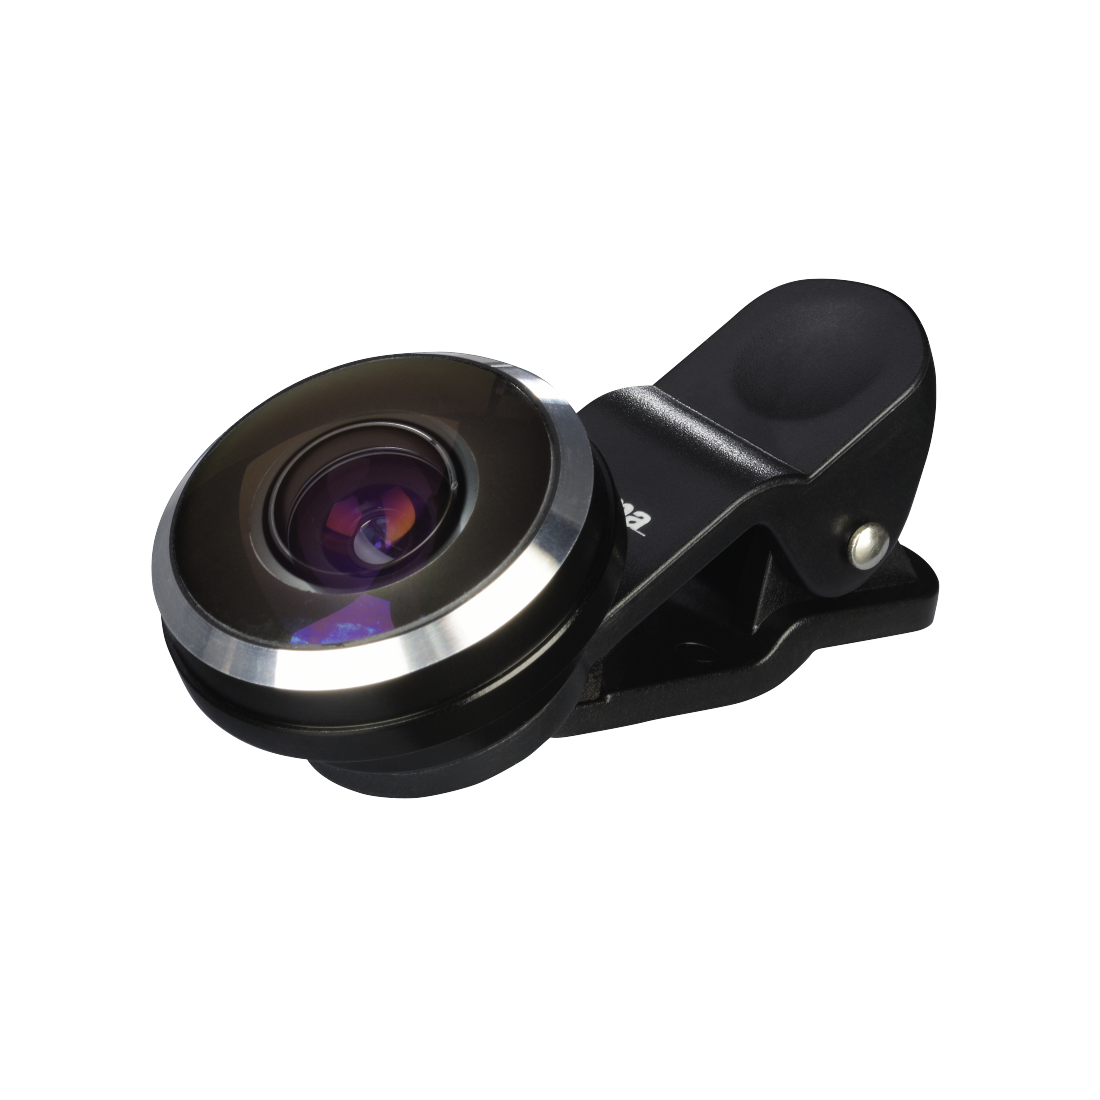 Hama com lens for. Eye clip fish picture transparent library